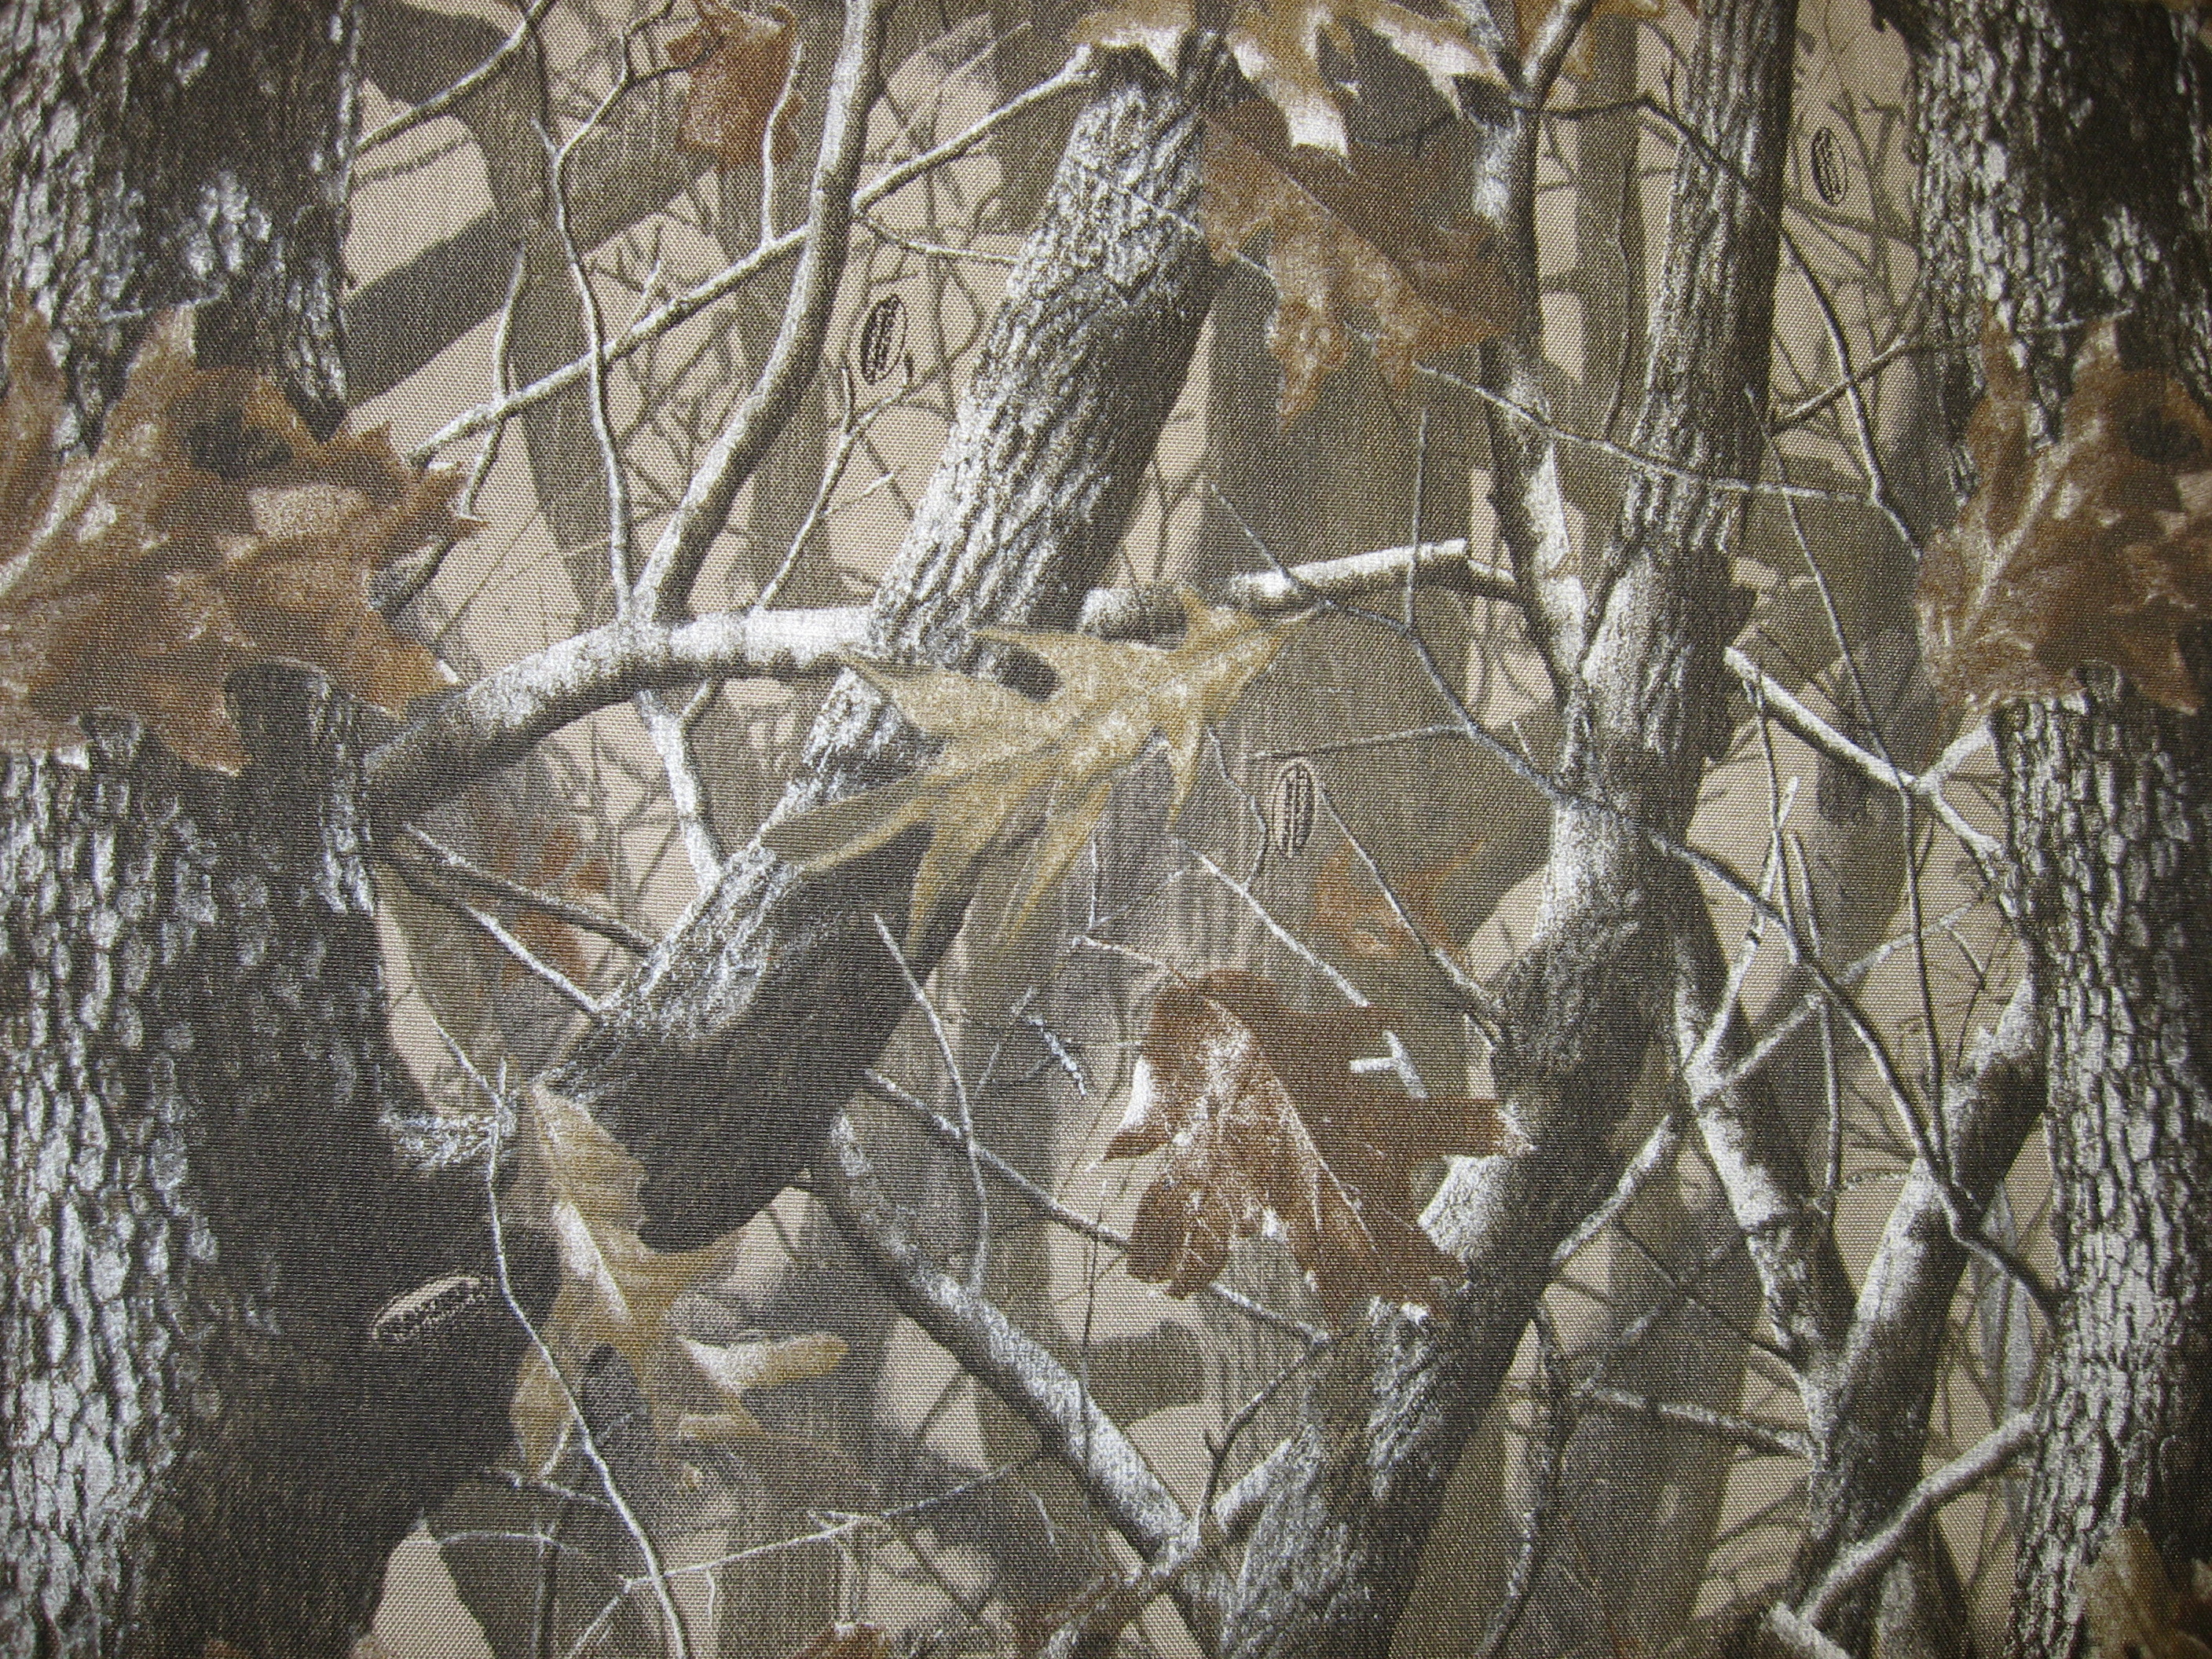 Realtree Max 5 Background 183 ①